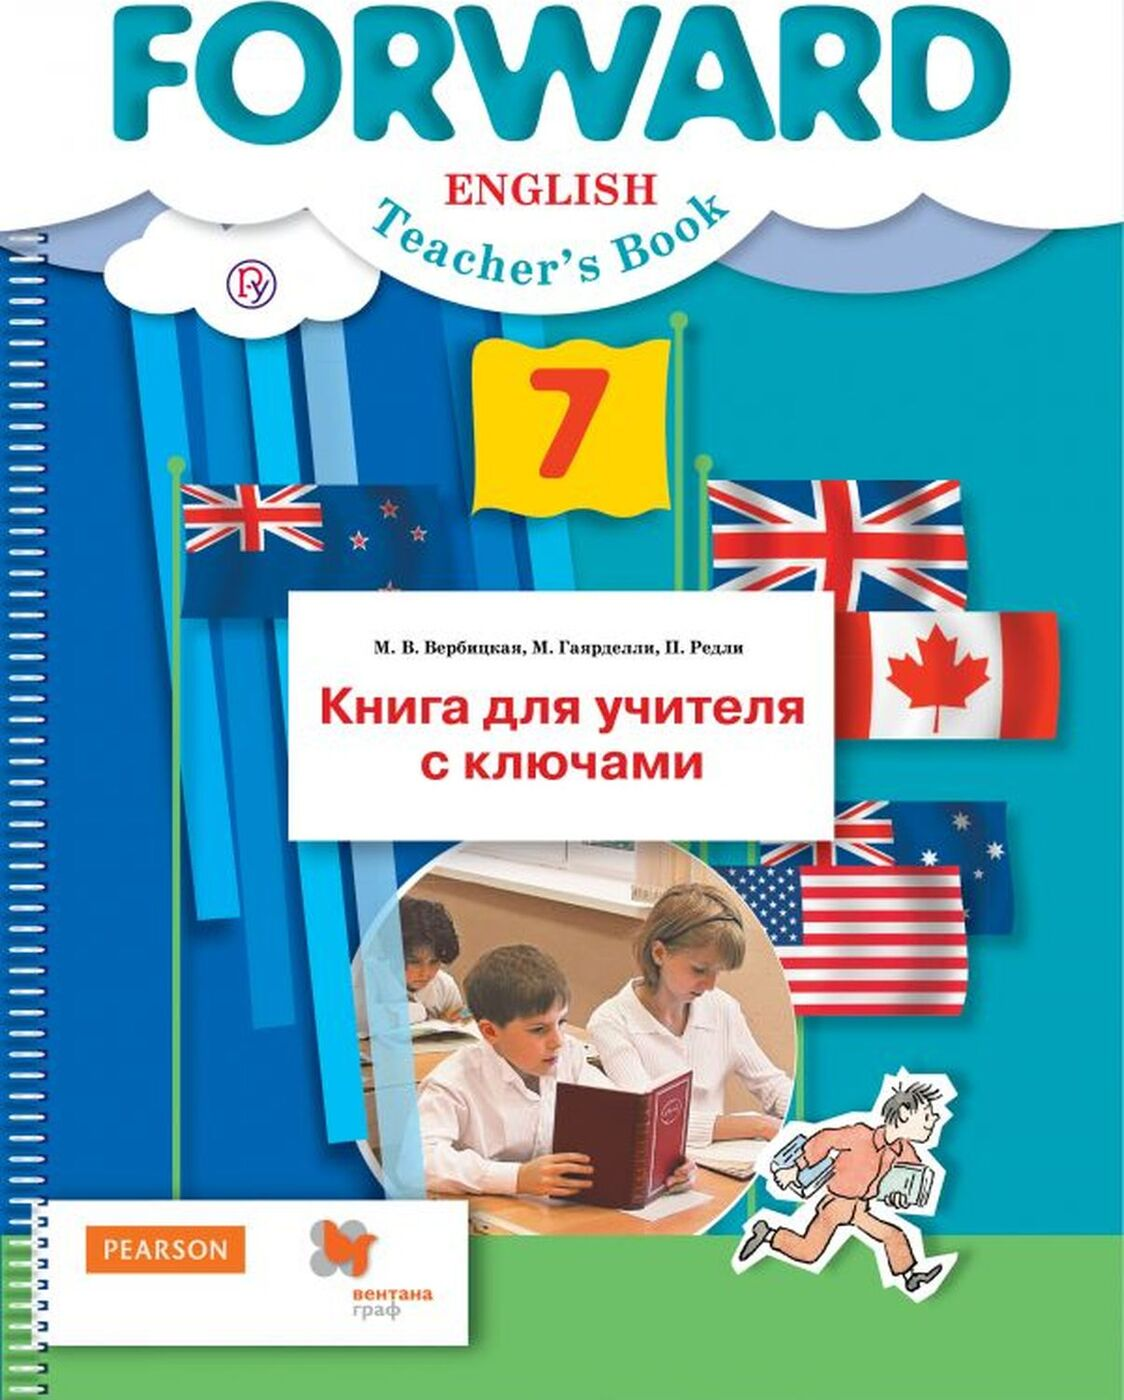 Forward English: Teacher`s Book/ Английский язык. 7 класс. Книга для учителя с ключами | Вербицкая Мария Валерьевна, Гаярделли Мариза